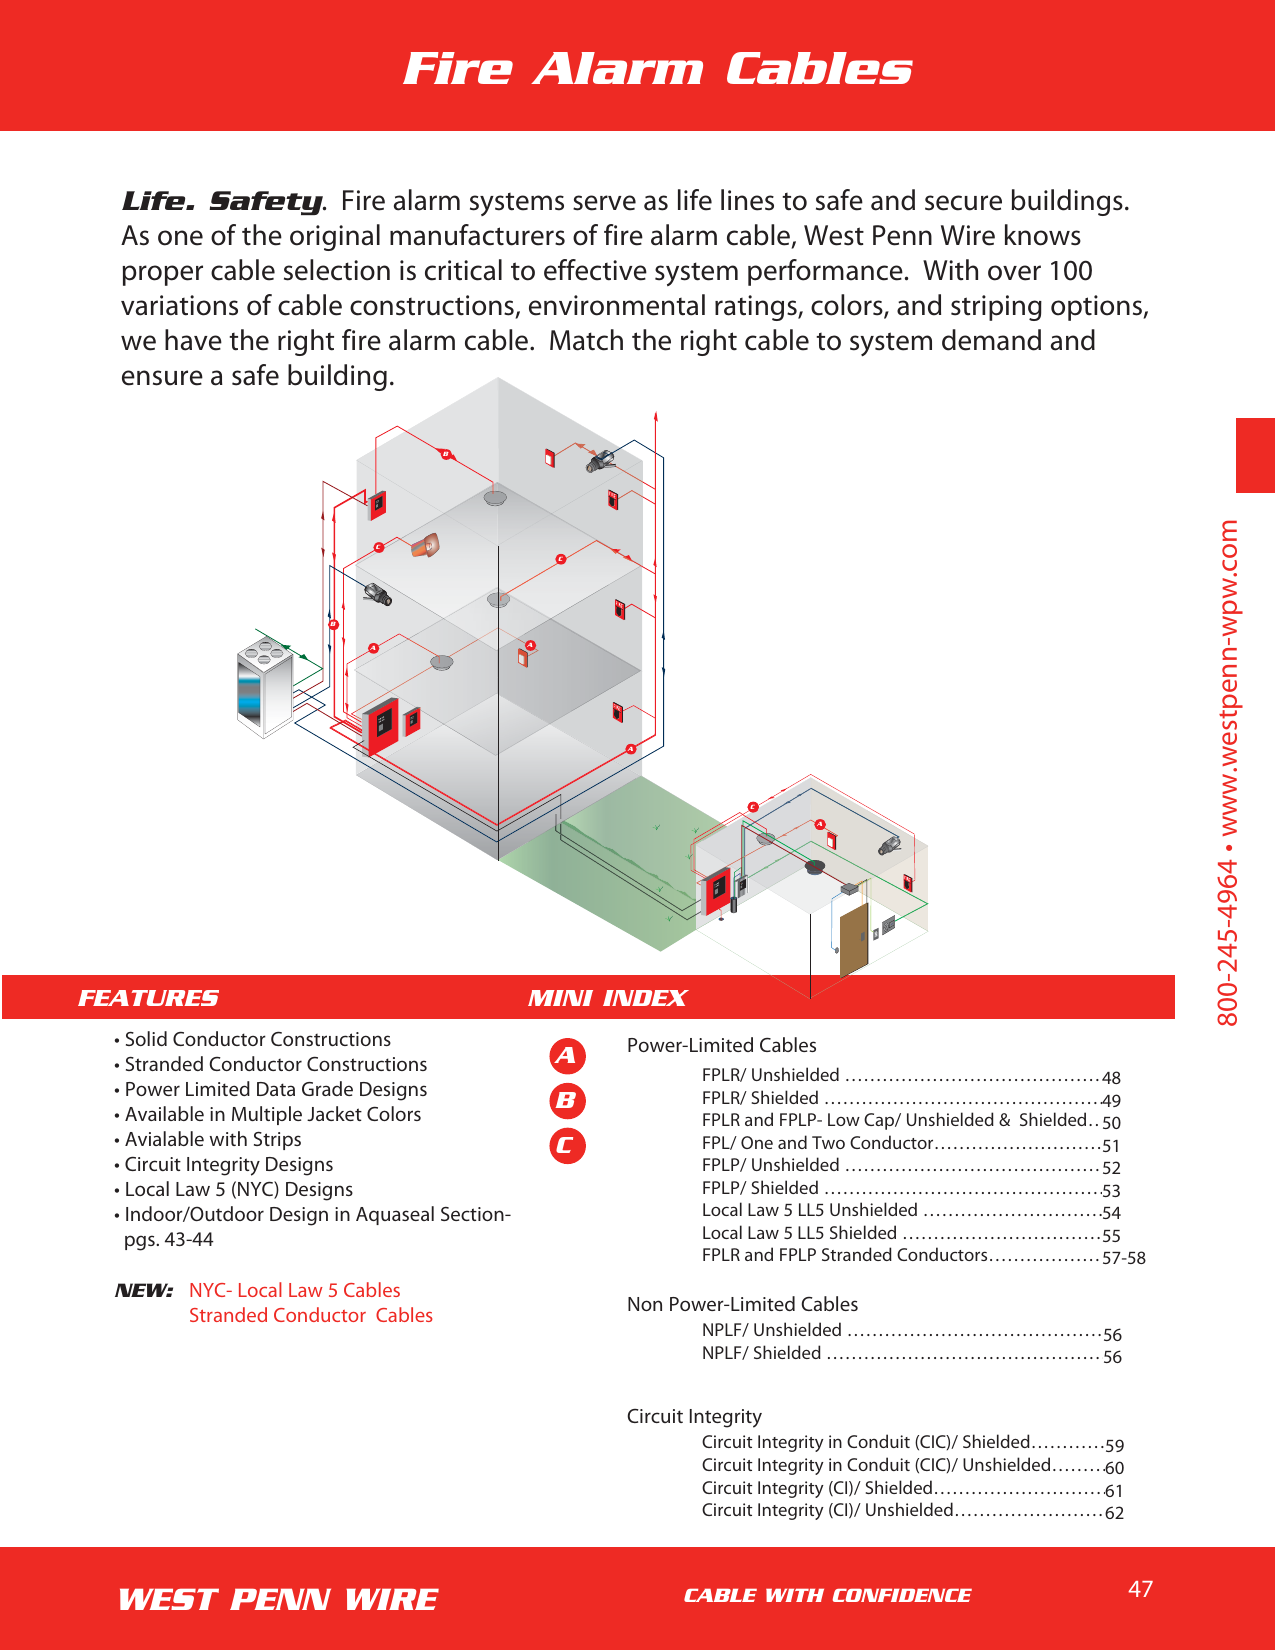 Fire Alarm System Wiring Also Fire Alarm Circuit Diagram On Wiring